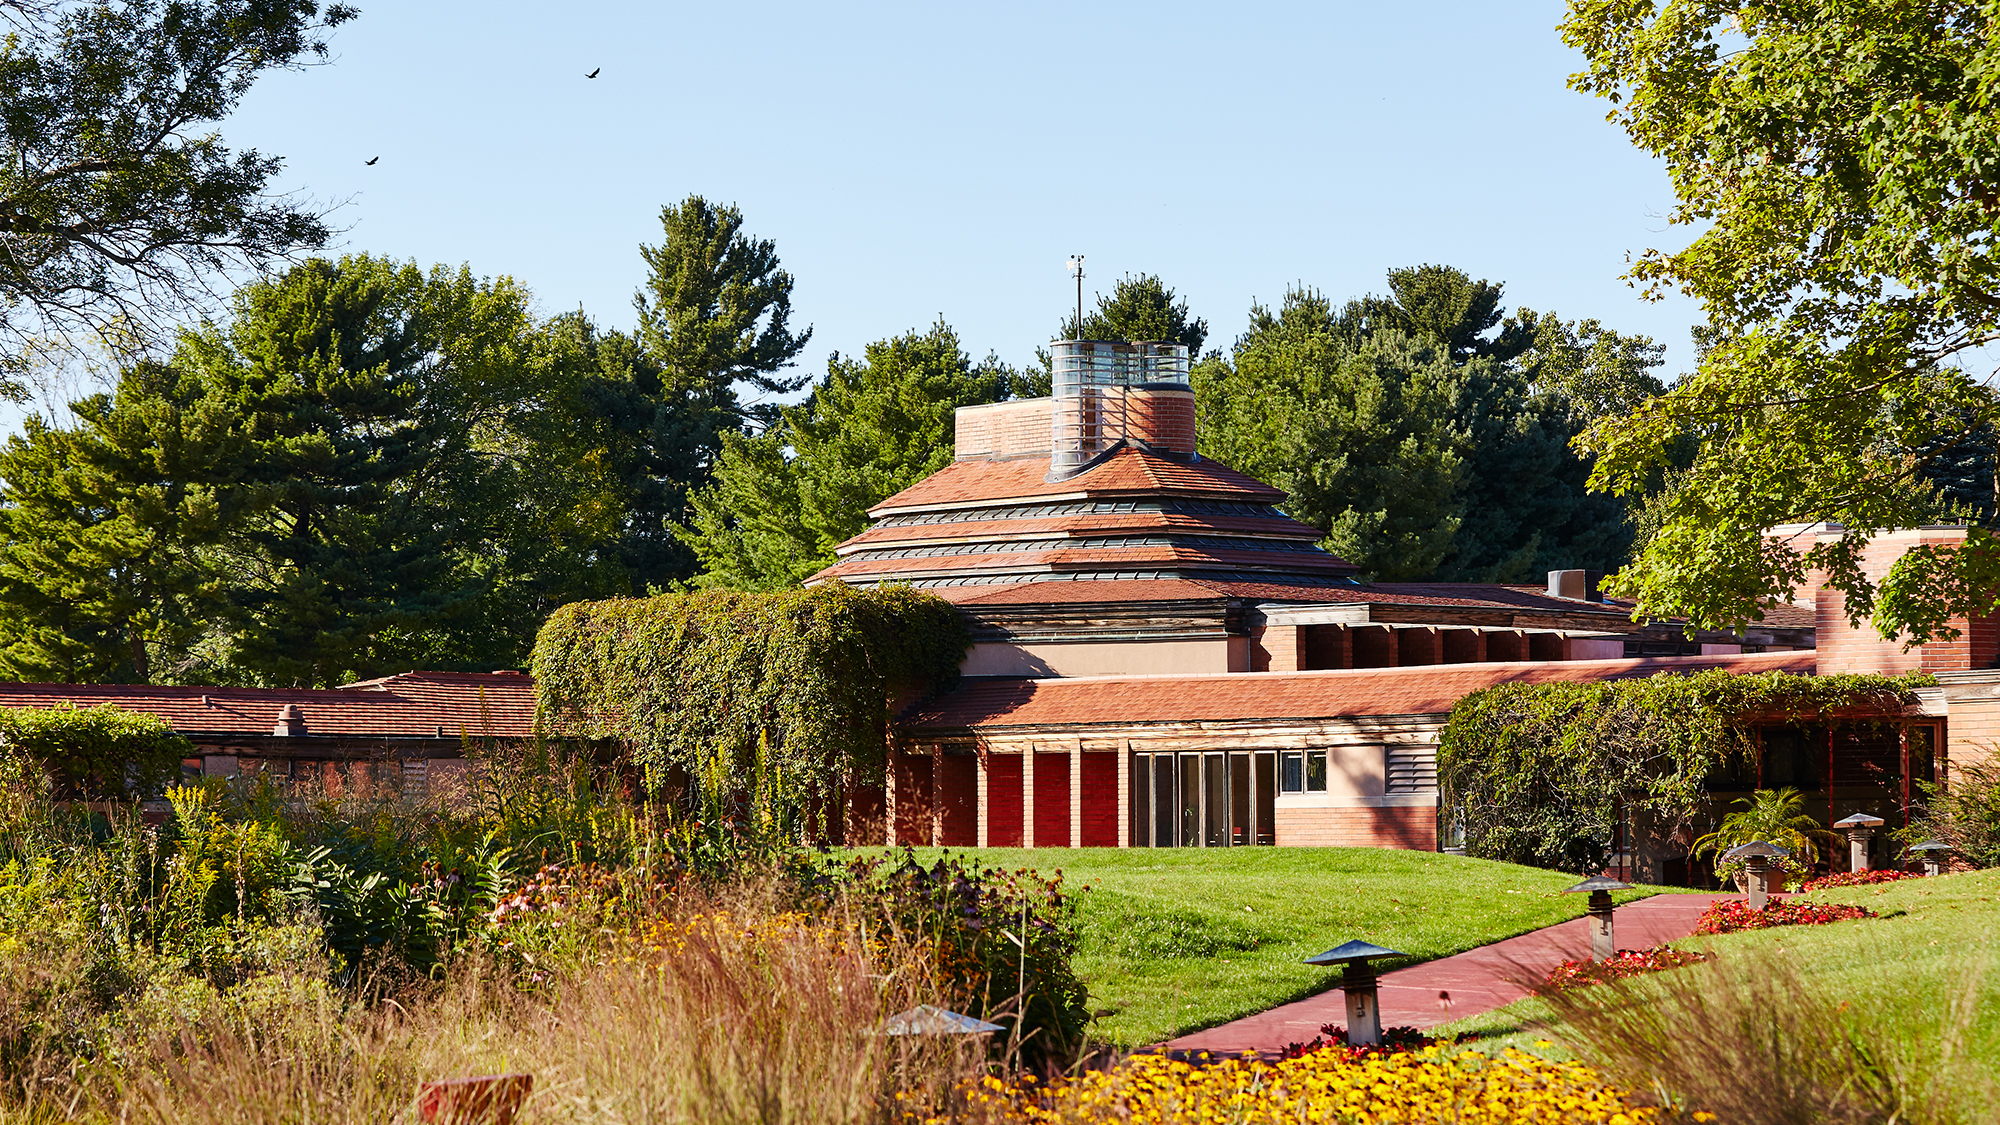 H.F. Johnson Jr. e a casa Wingspread, criada por Frank Lloyd Wright